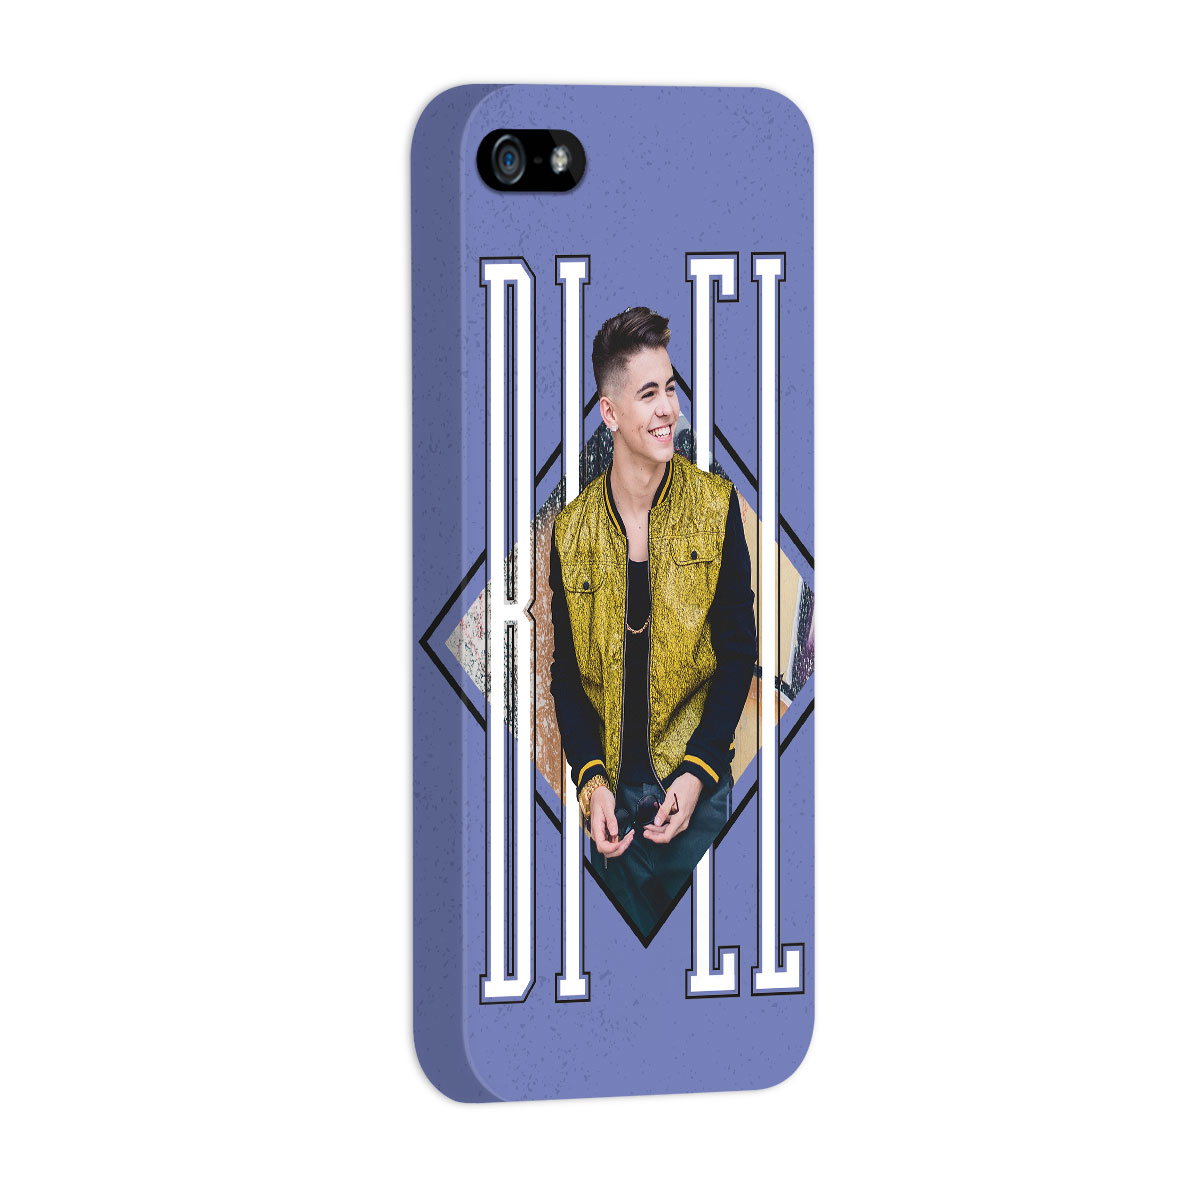 Capa para iPhone 5/5S Biel Type